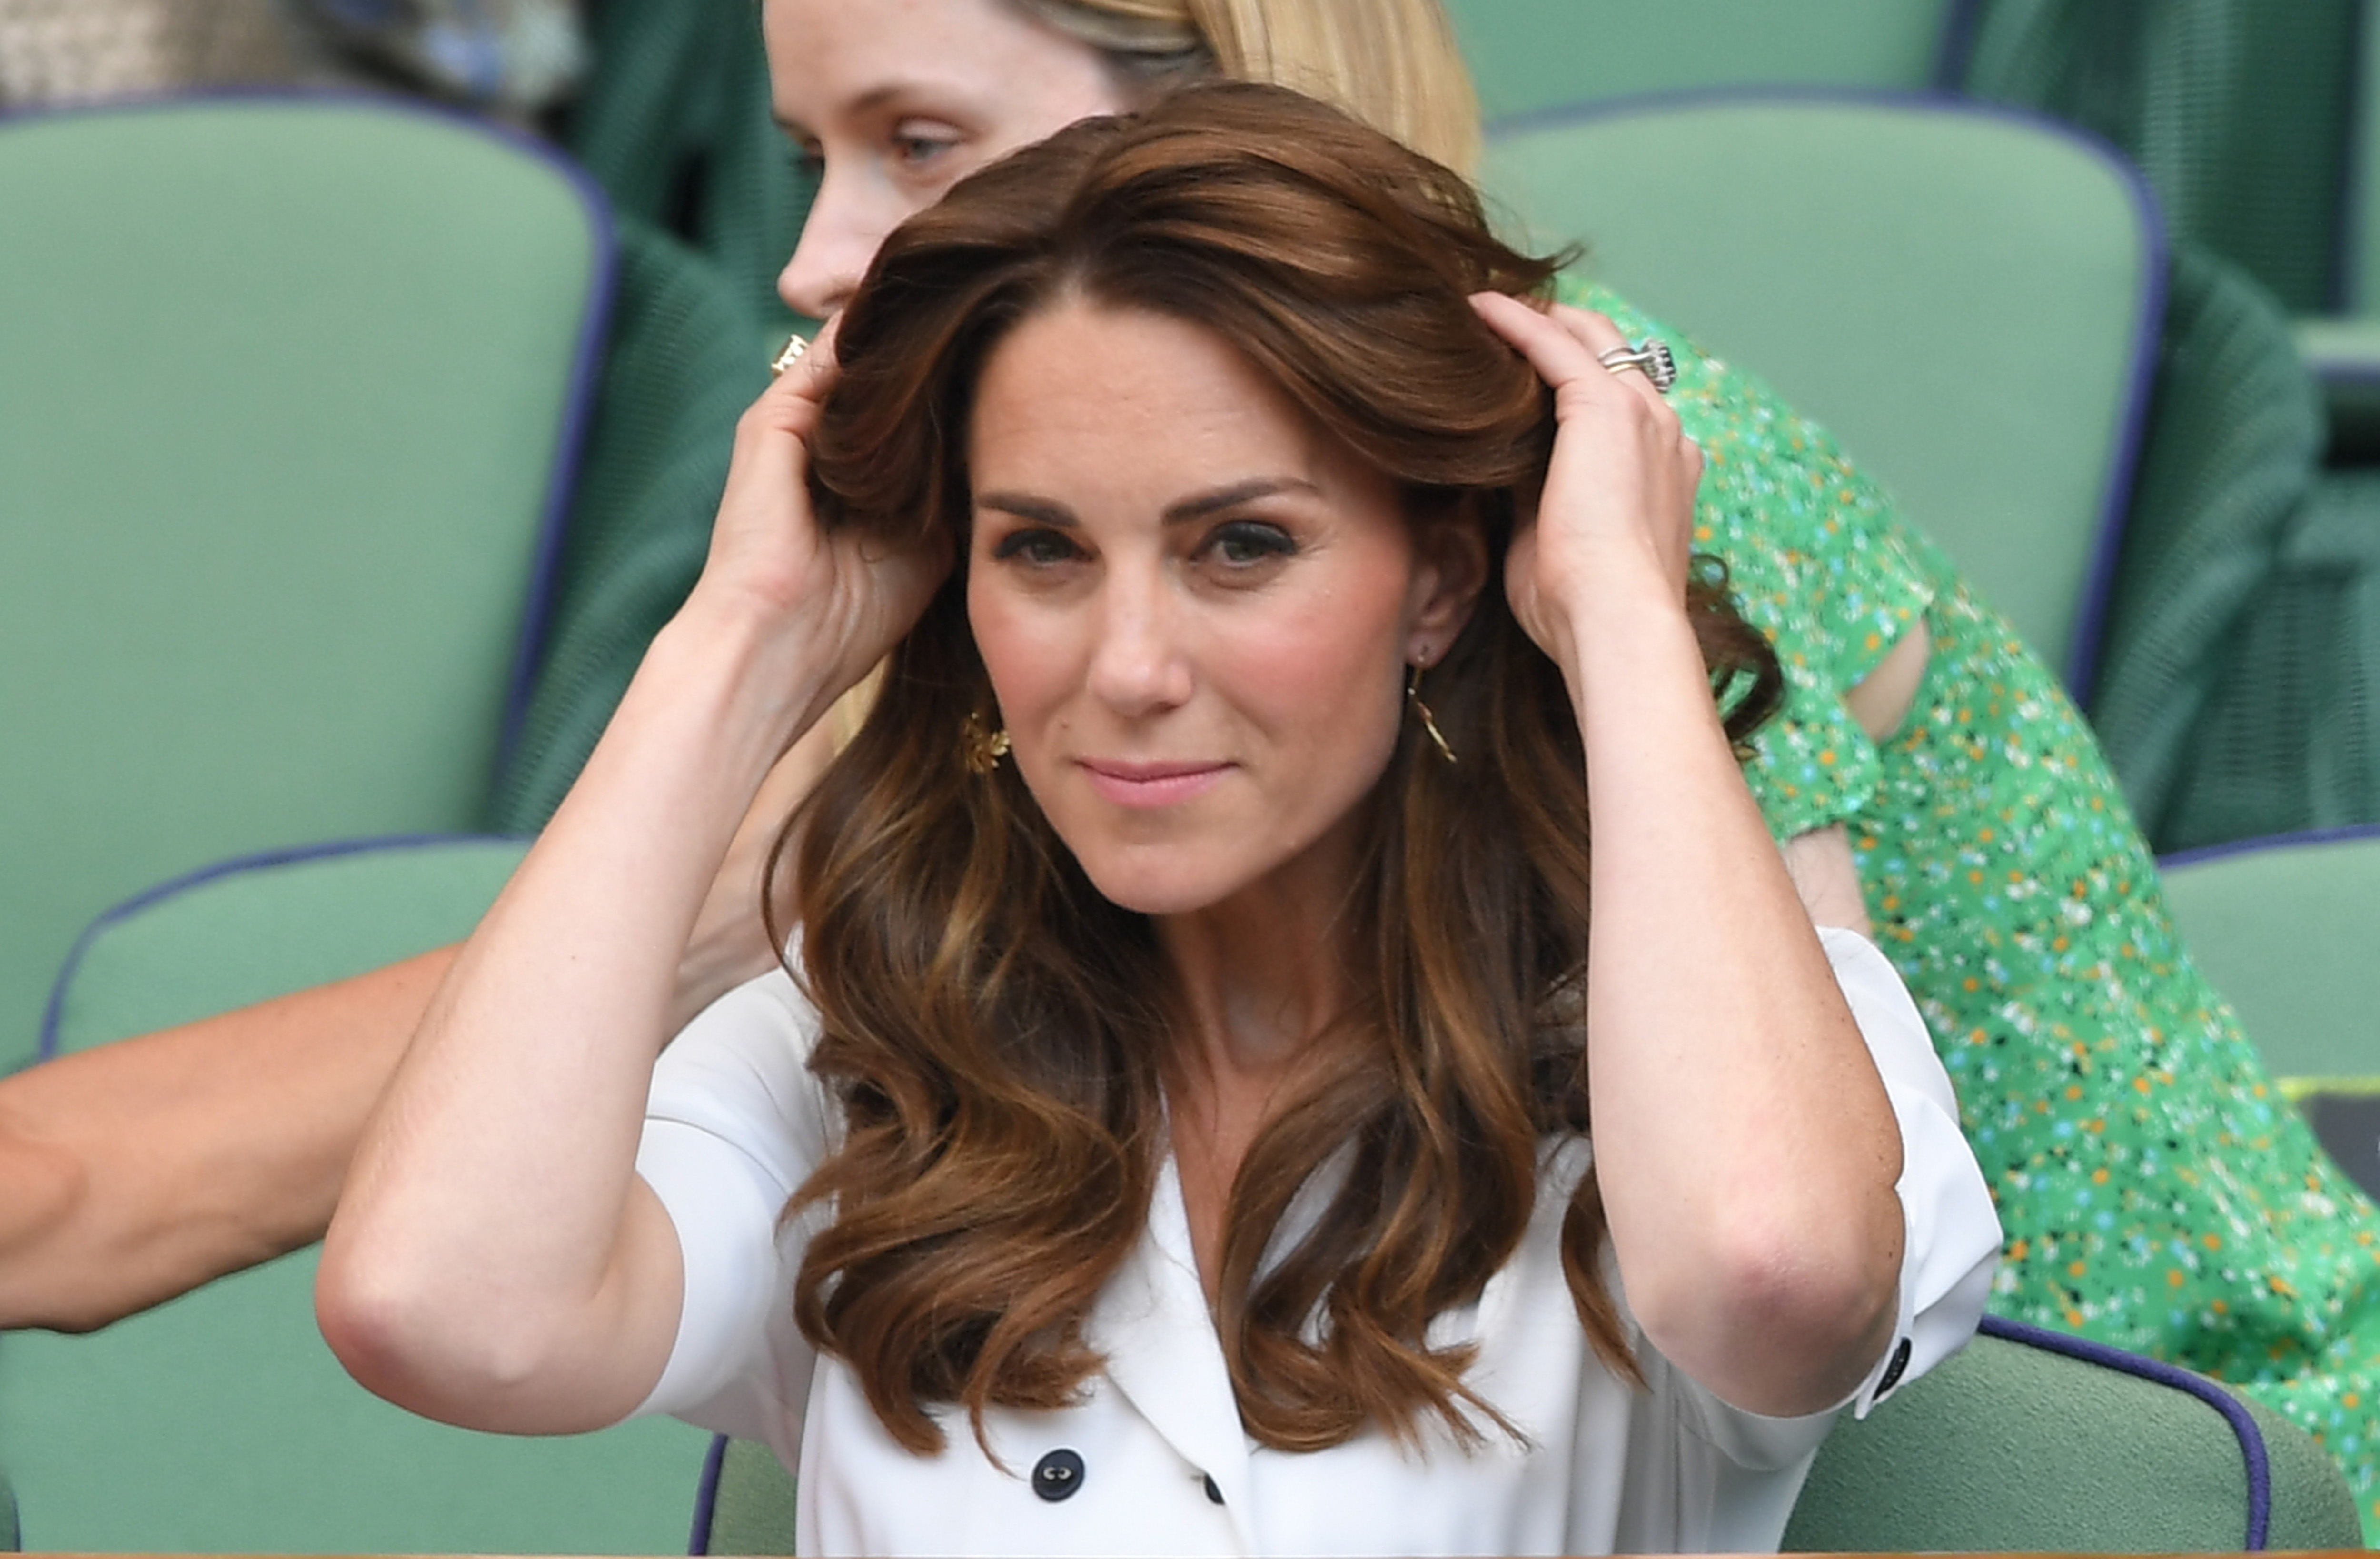 La duchesse de Cambridge Kate Middleton